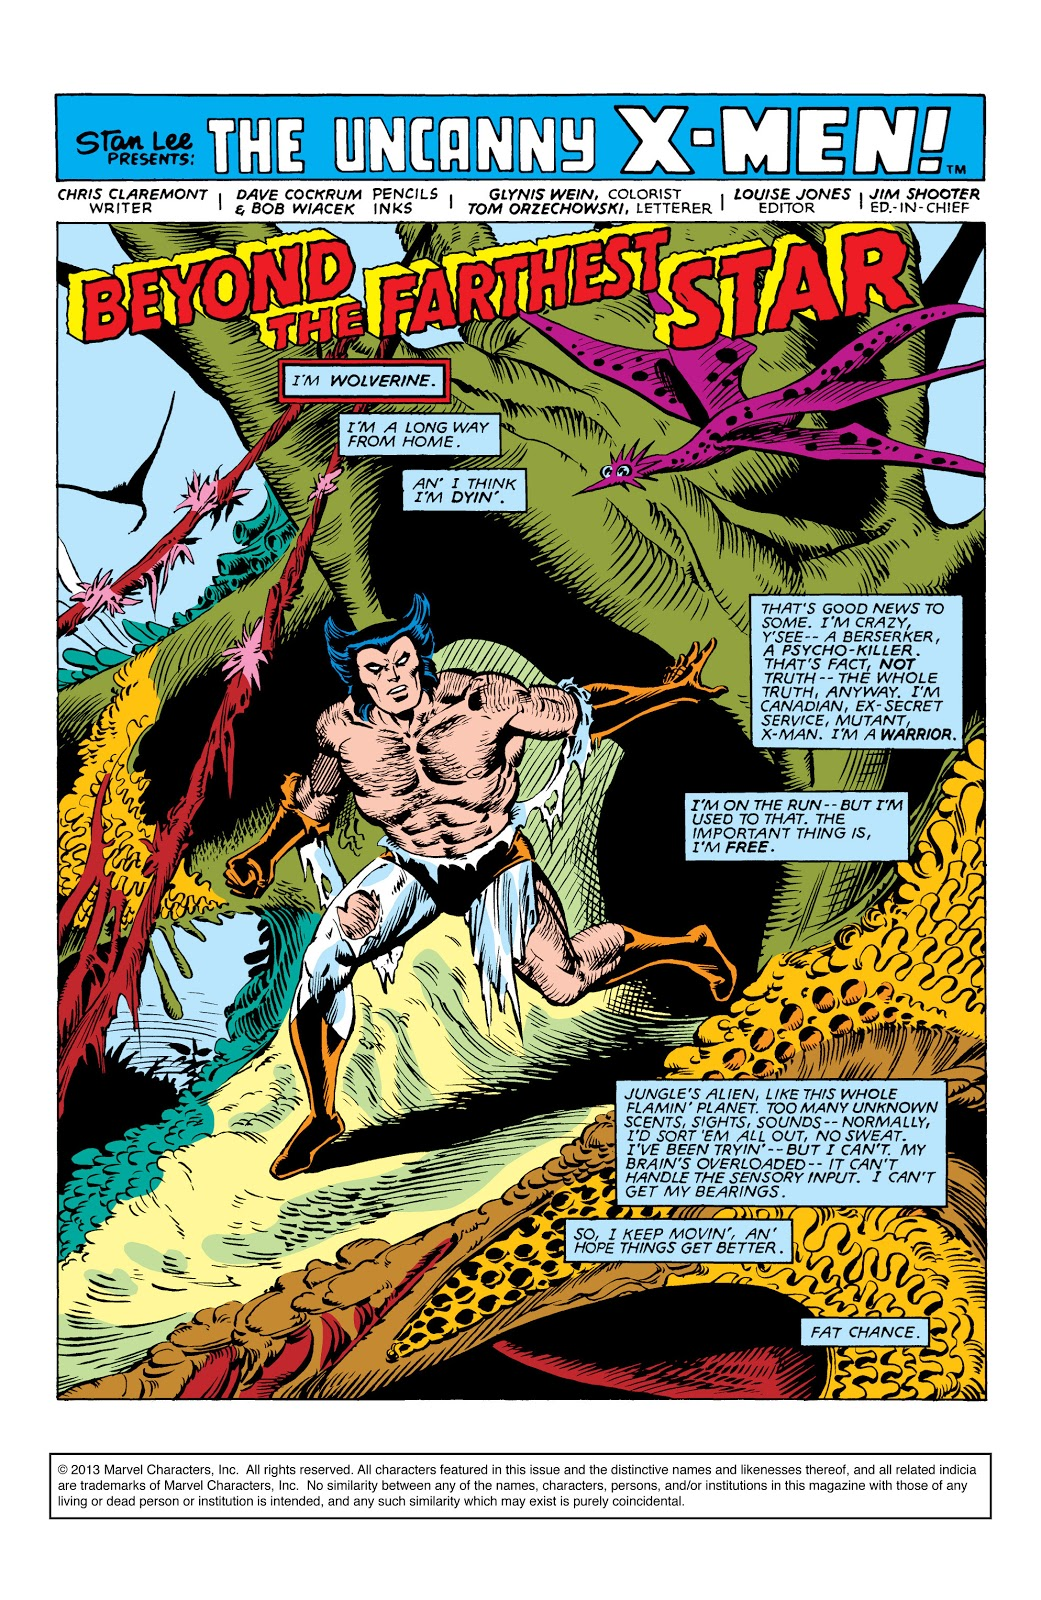 In 'Uncanny X-Men' (1982) #162, Wolverine on the run from the Brood figures out he is on an alien planet.